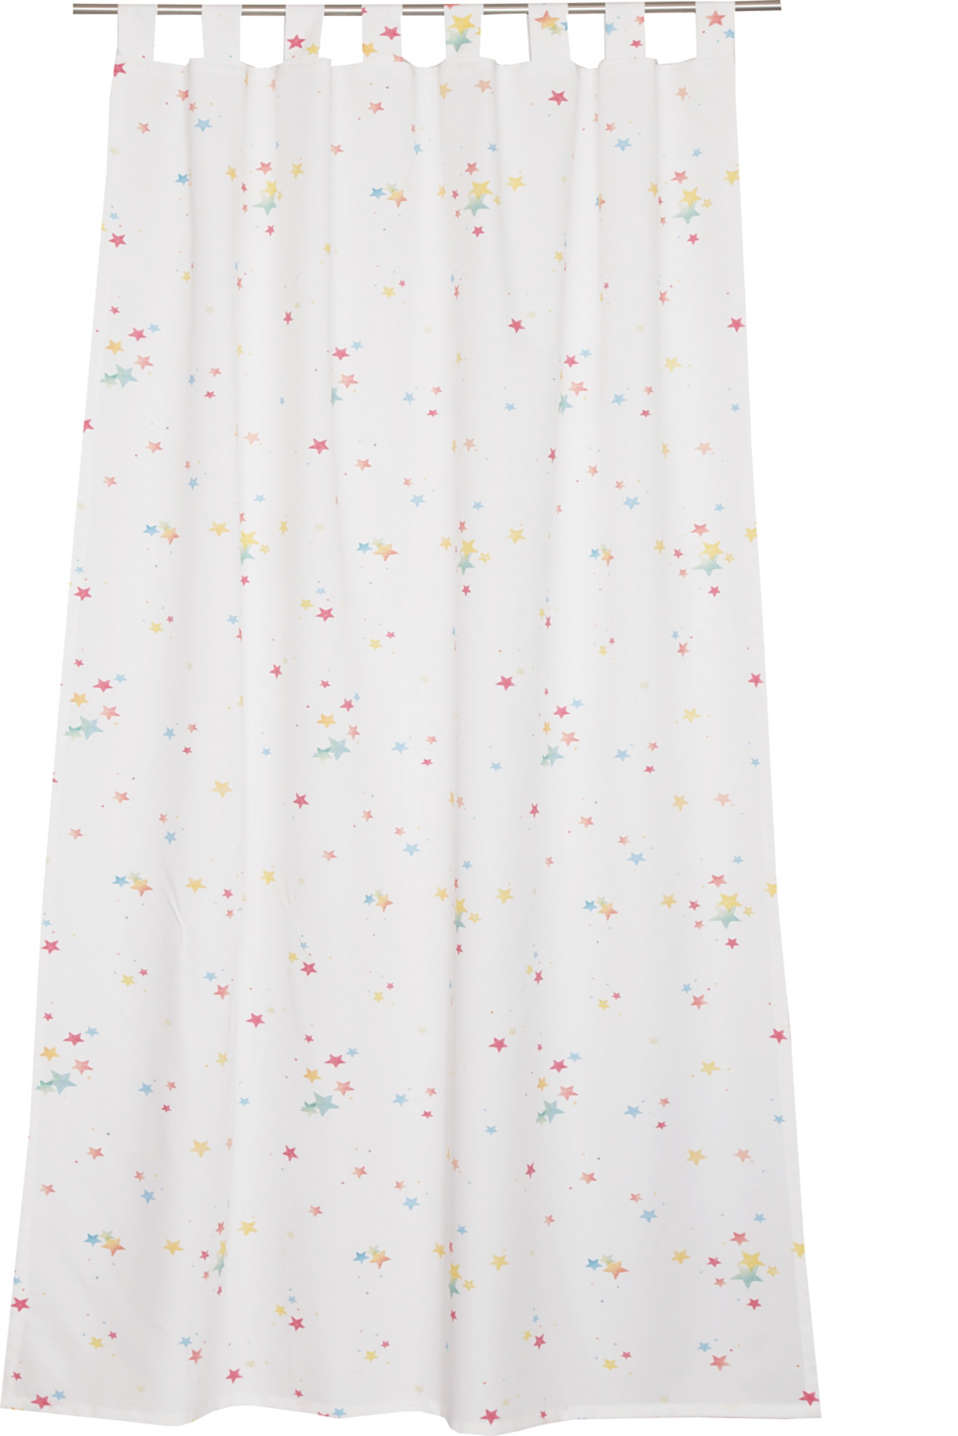 Esprit - Opaque tab top curtain with a star print